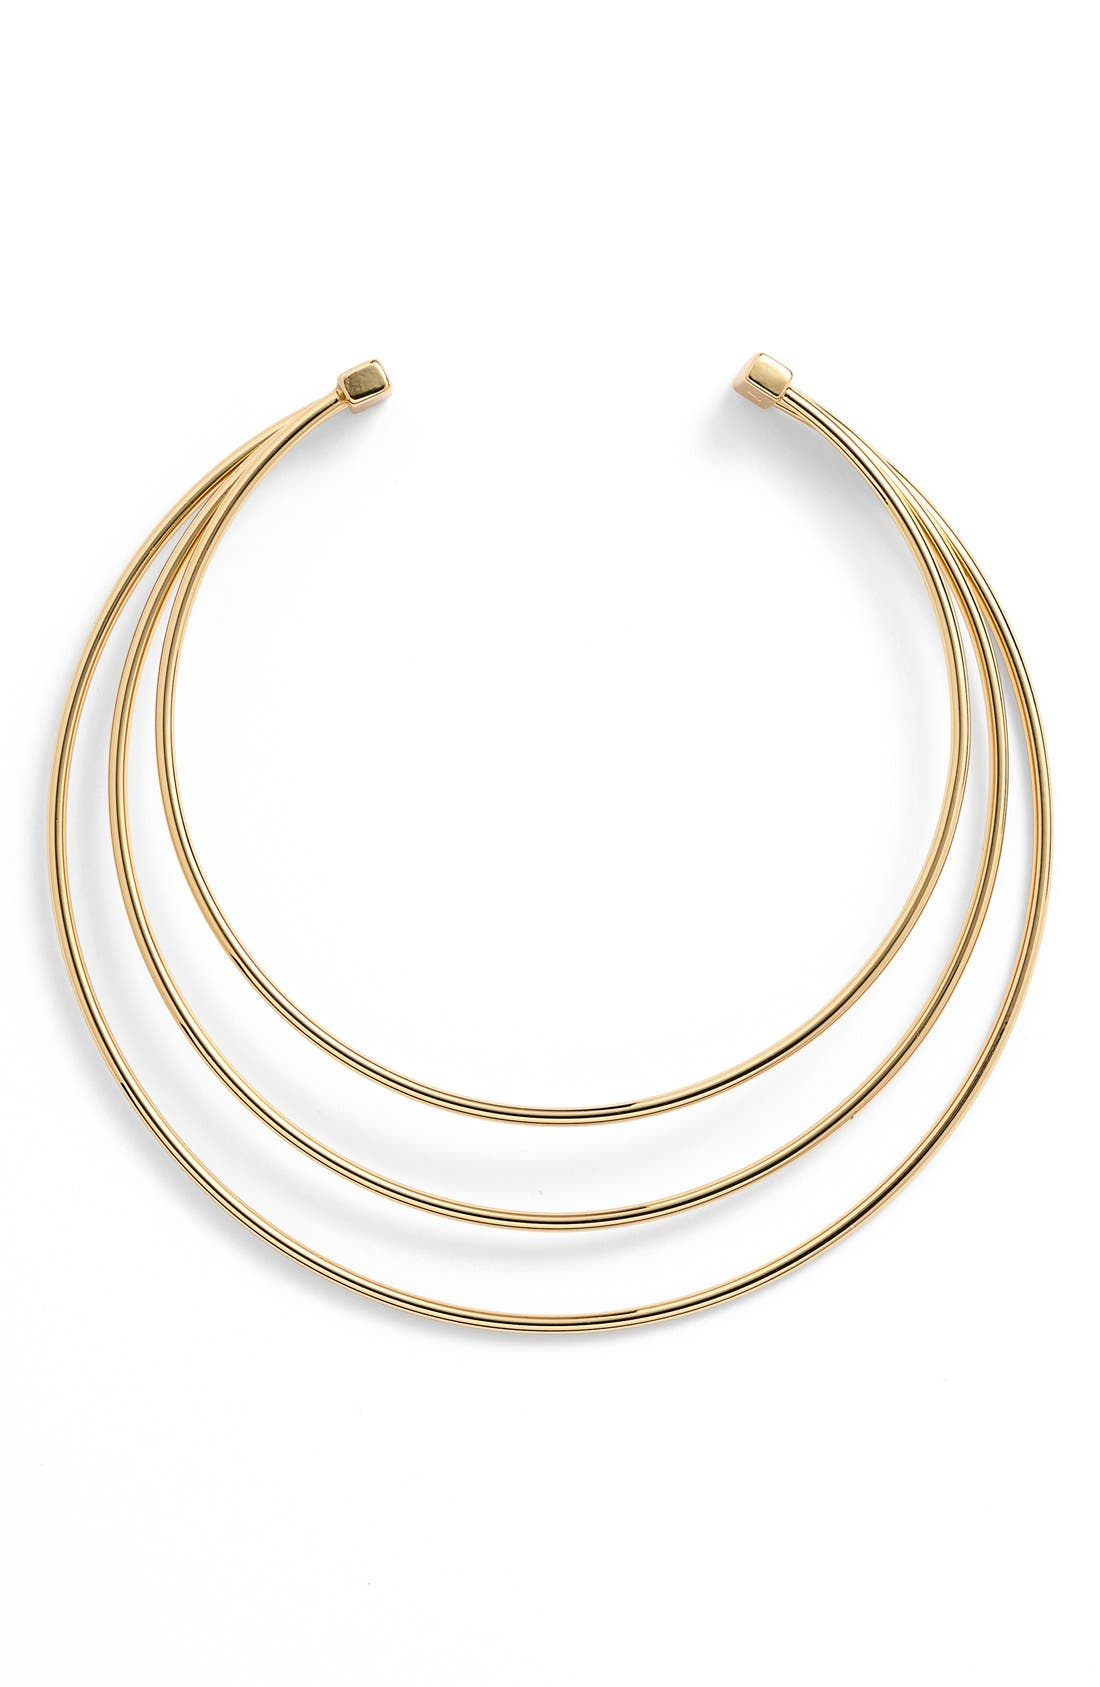 Main Image - Jules Smith Collar Necklace